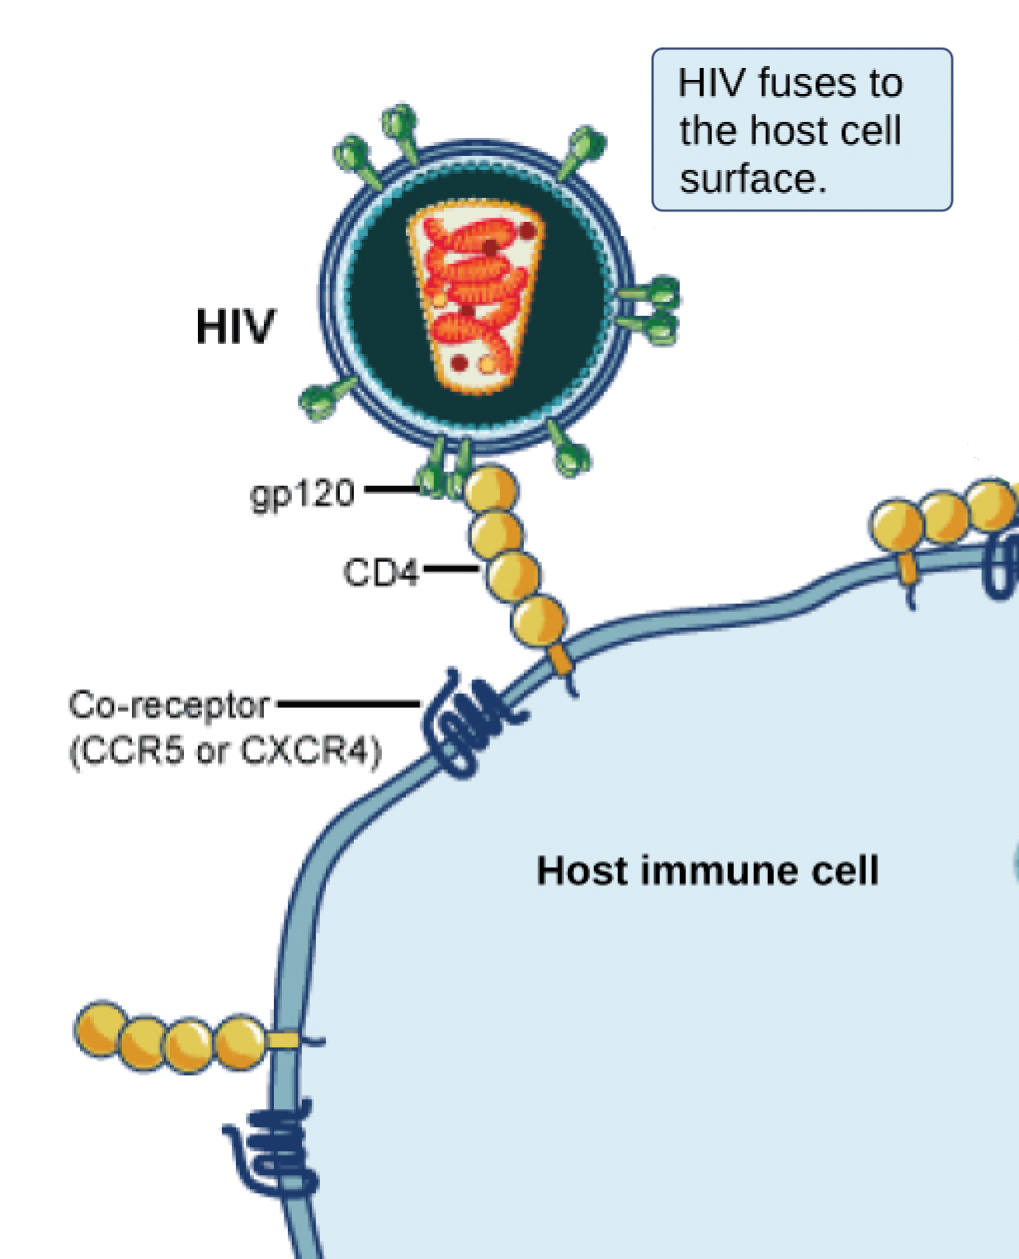 In the illustration a viral receptor on the surface of an HIV virus is attaches to a co-receptor embedded in the plasma membrane. The co-receptor is either CCR5 or CXCR4.